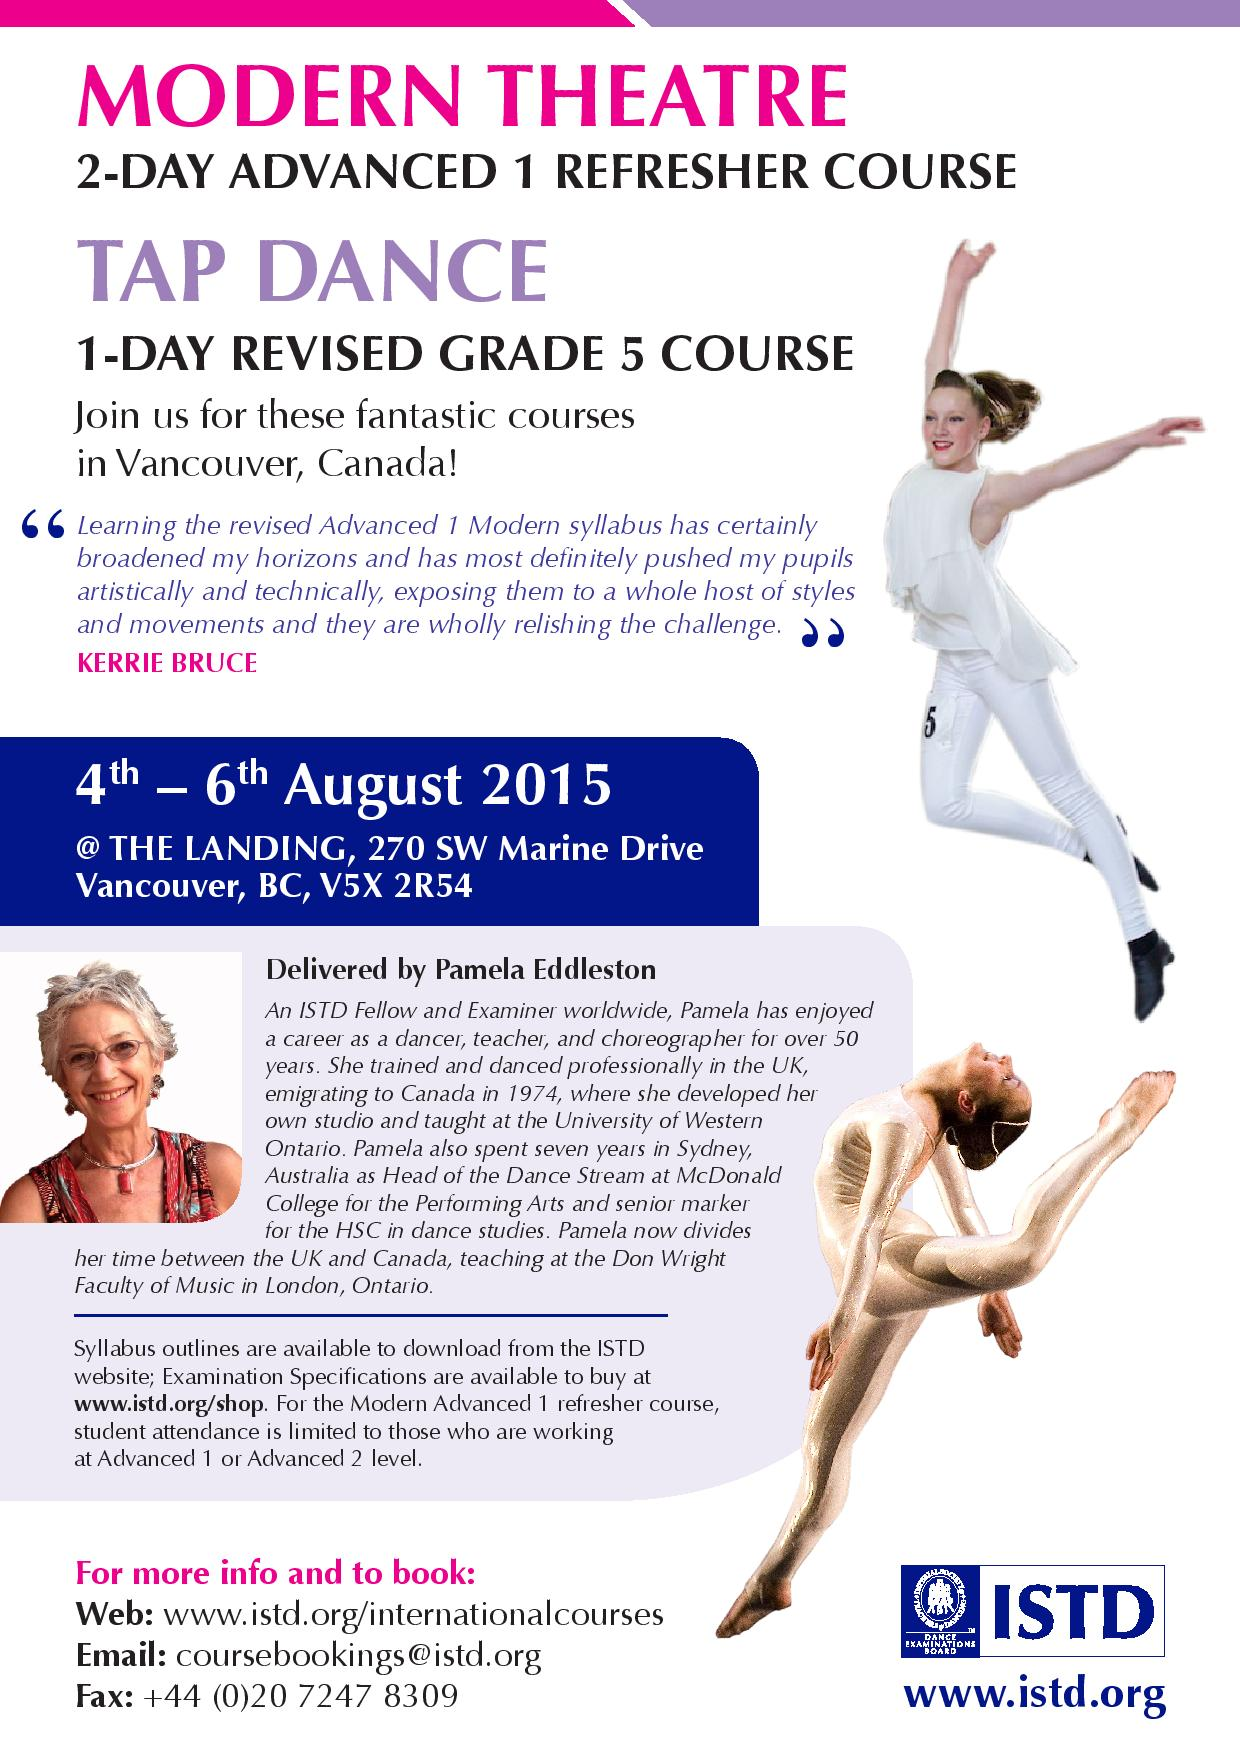 Canada courses August 2015 - Modern Theatre and Tap Dance